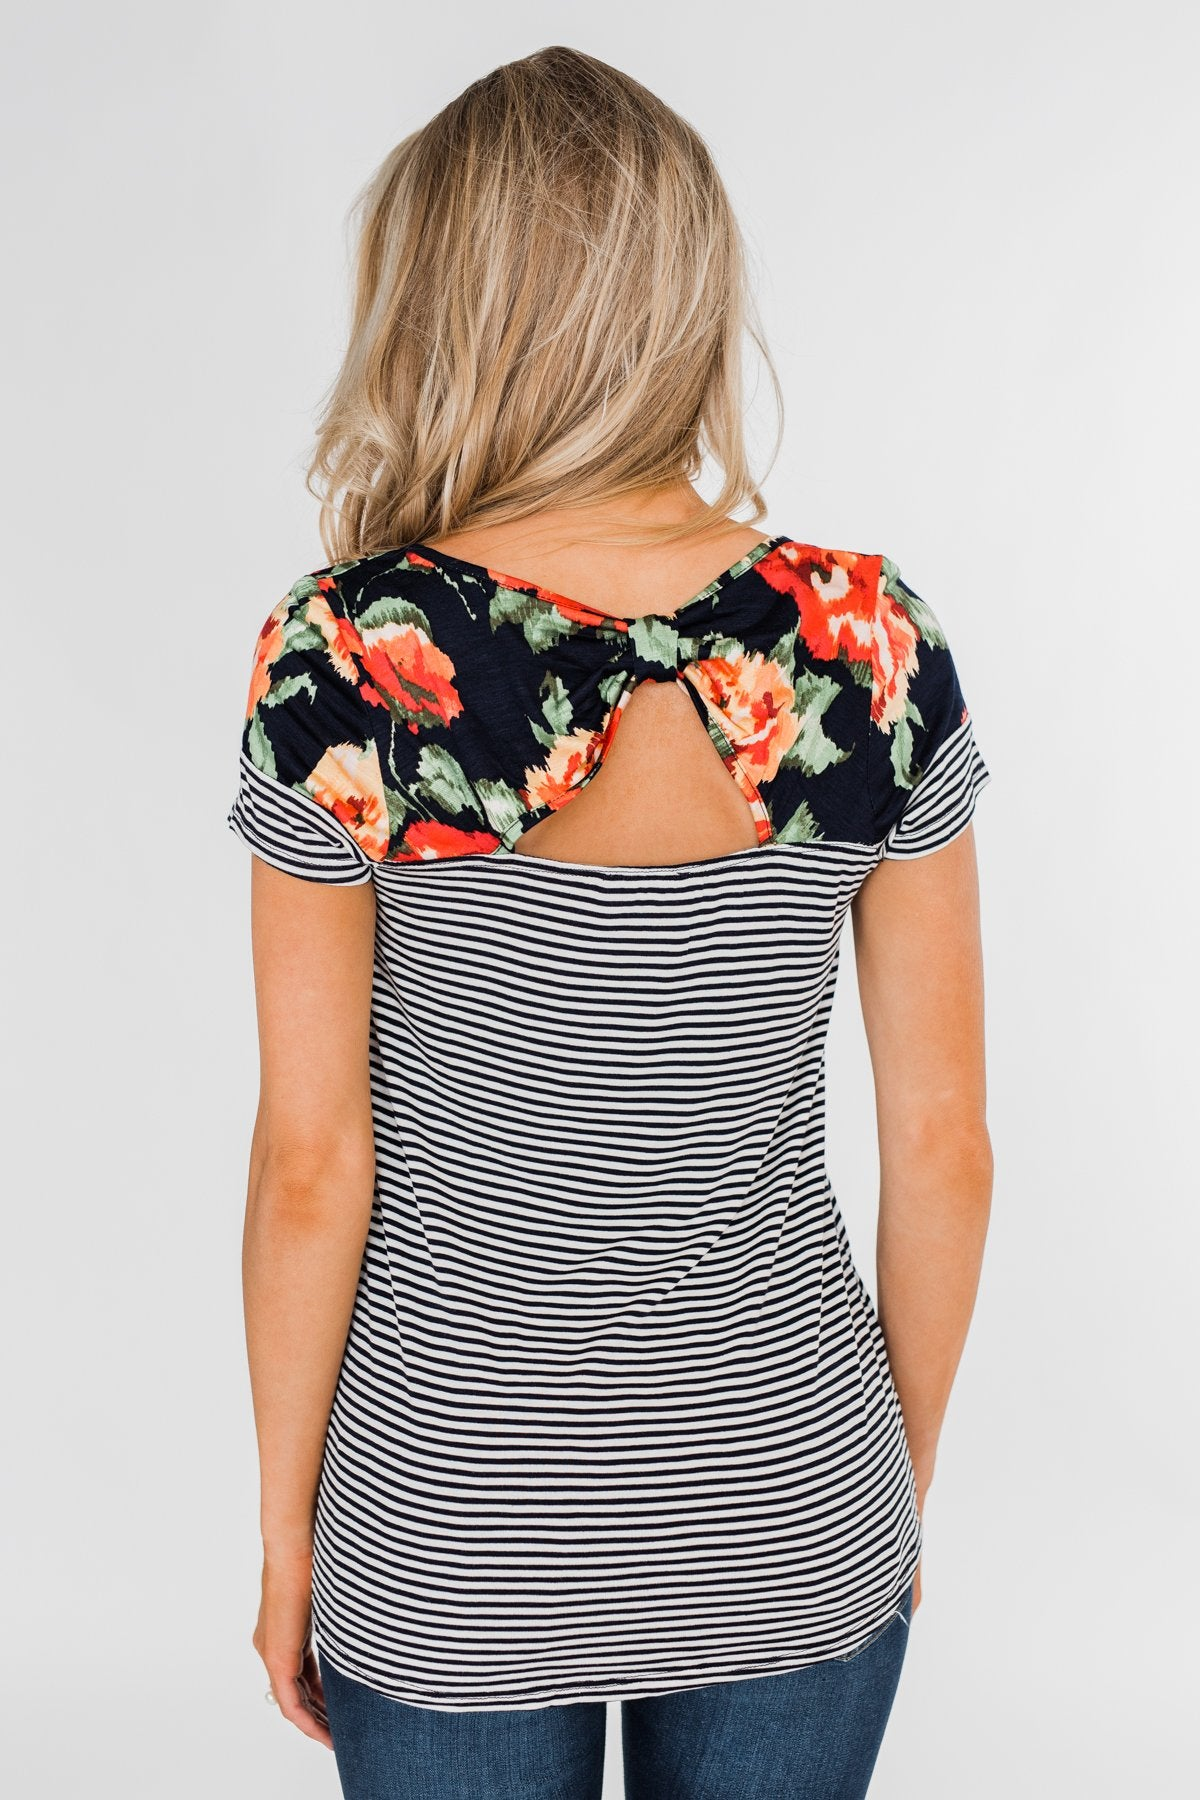 Floral Fever Short Sleeve Stripe and Floral Top - Navy